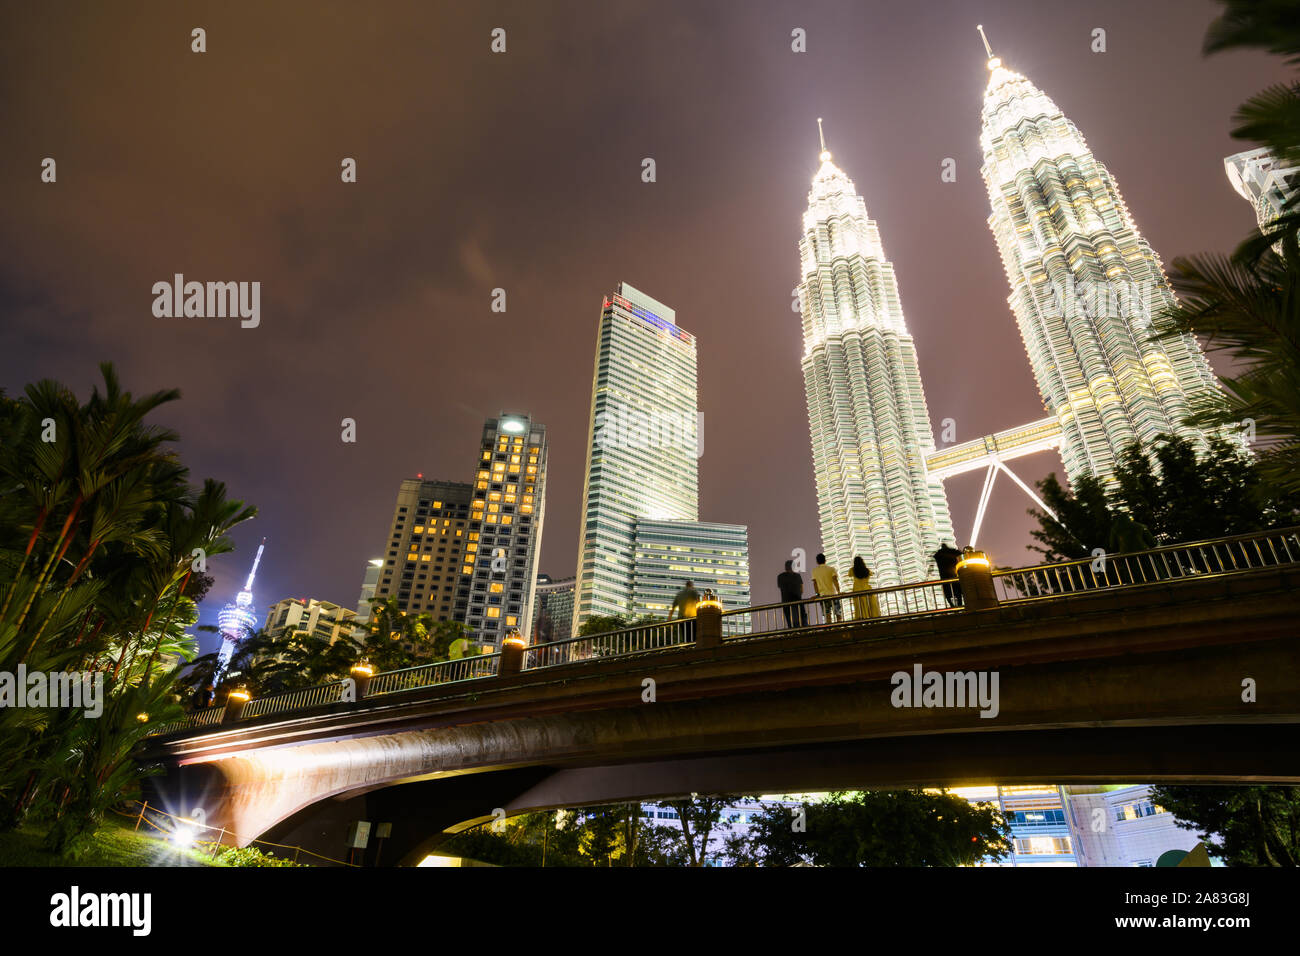 KL Tower and the Petronas Twin Tower illuminated at dusk. People enjoying the view from a bridge in KLCC Park Stock Photo